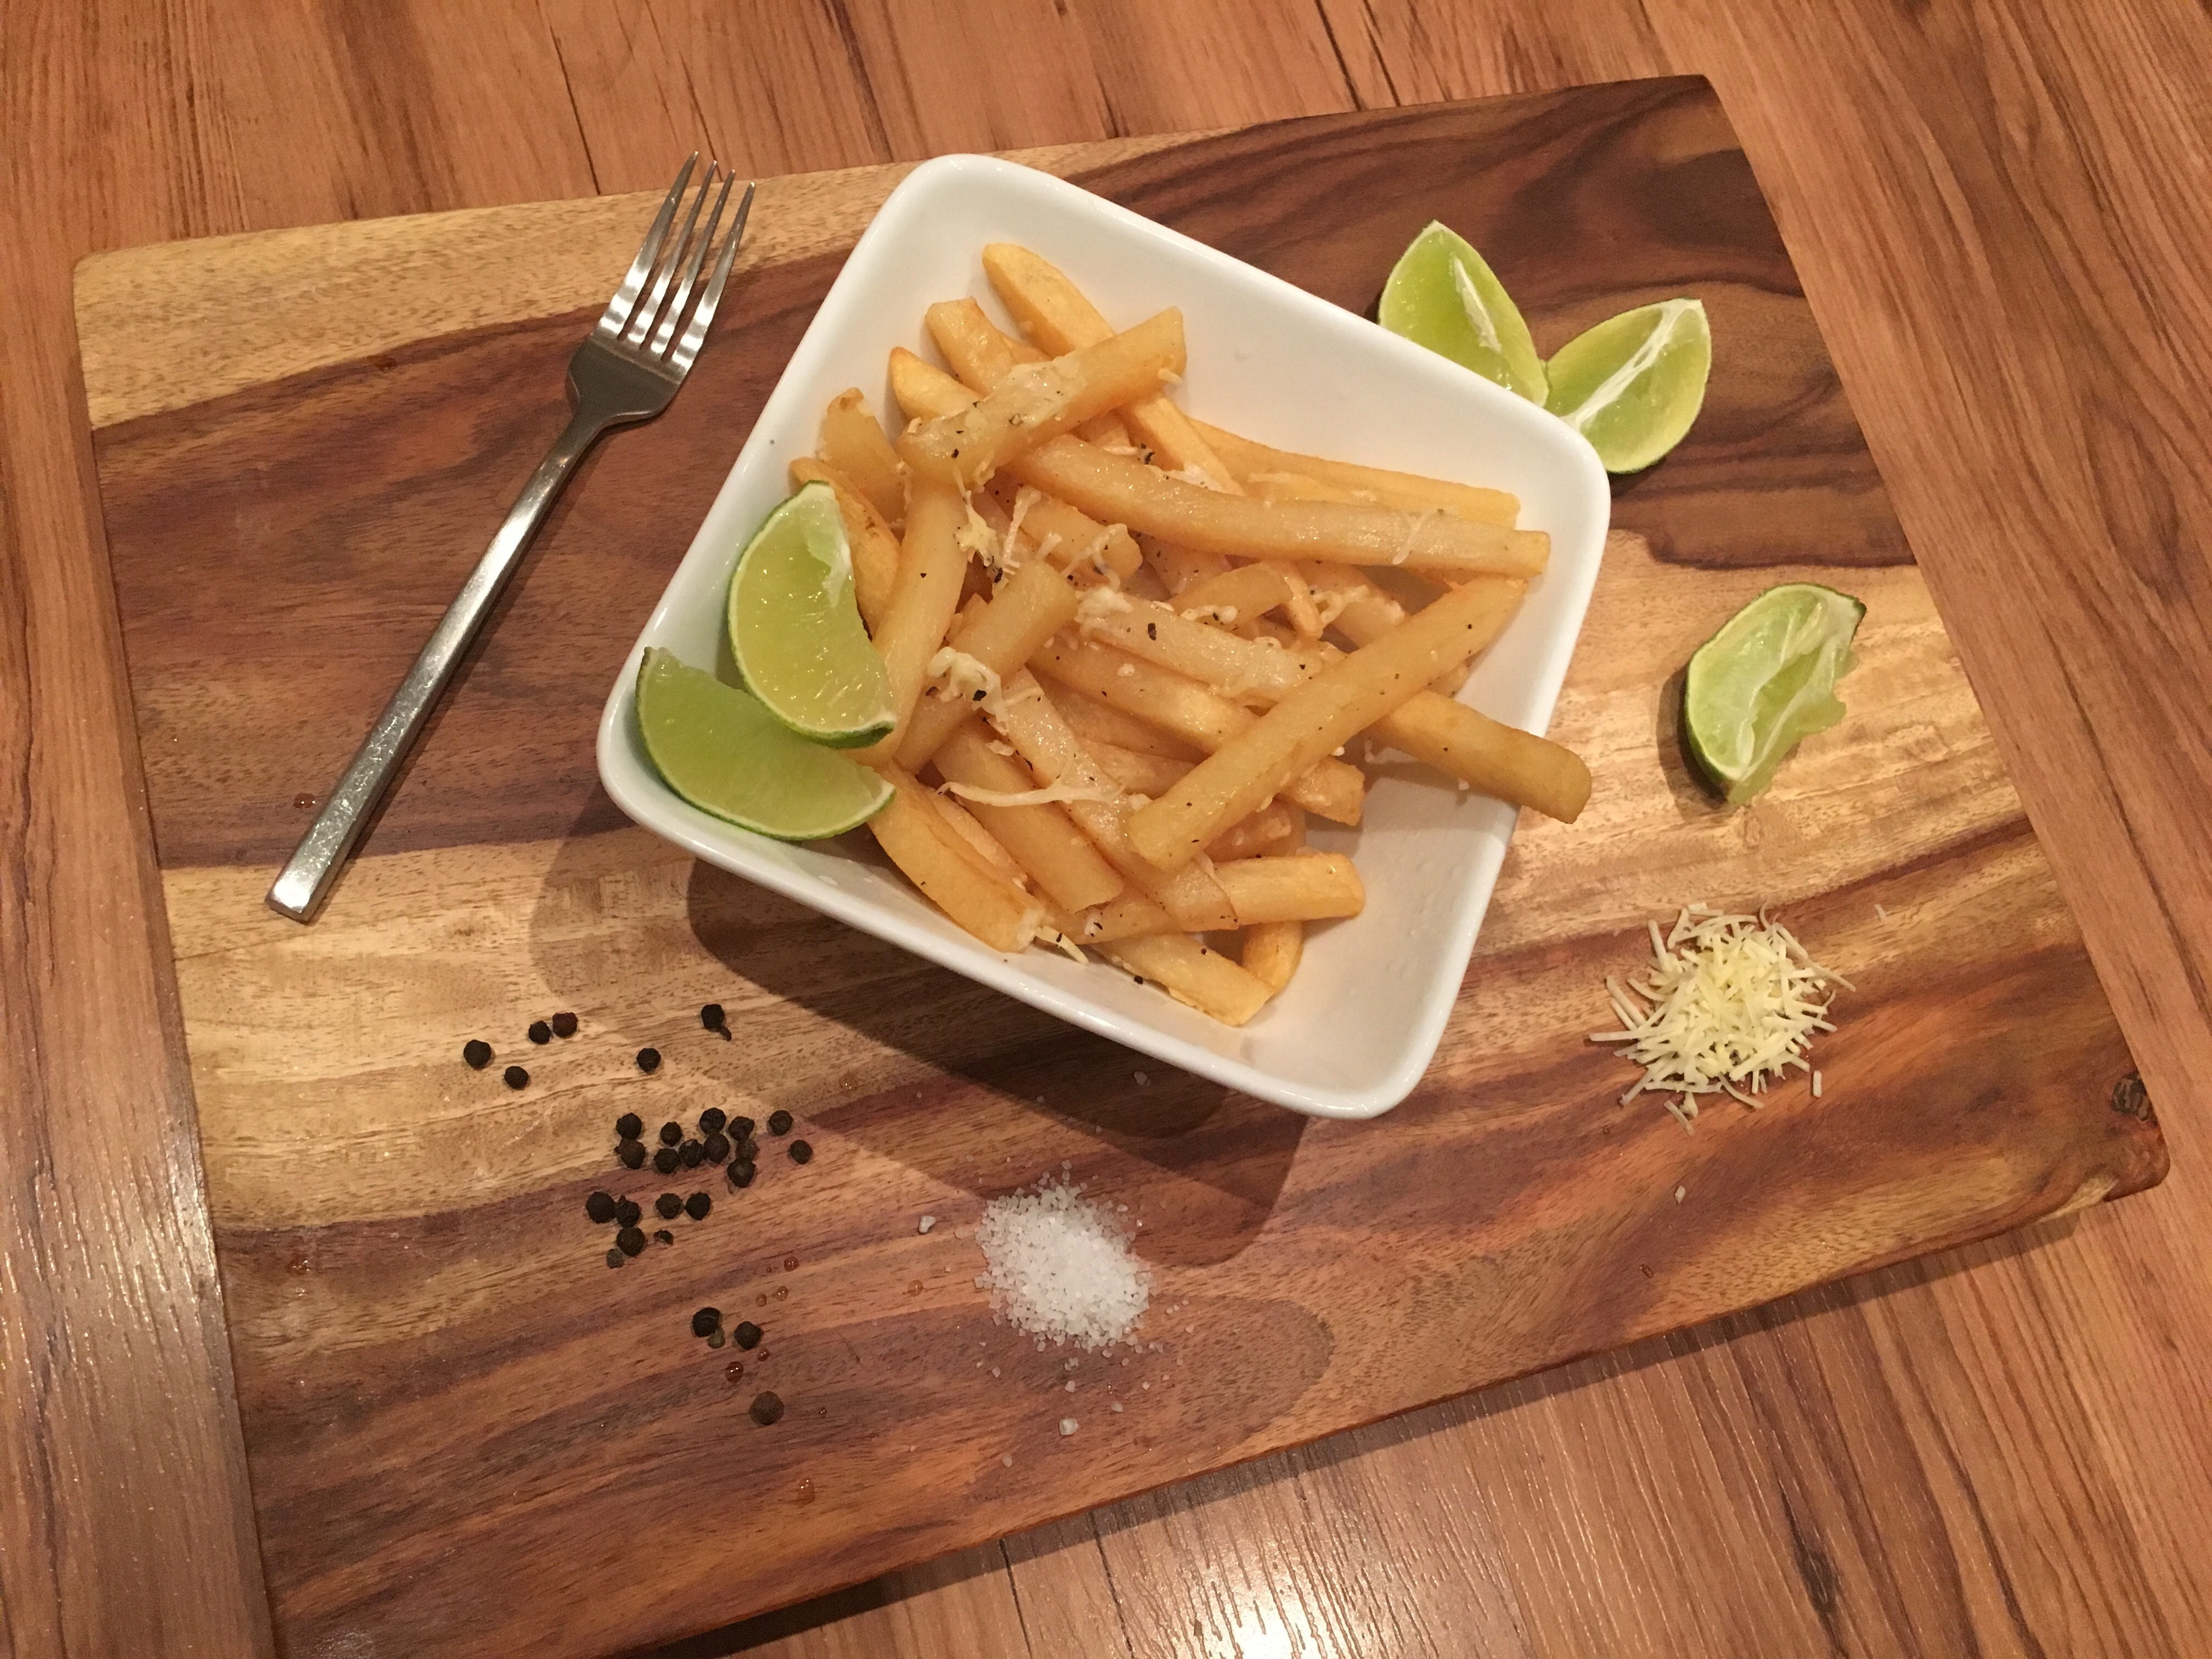 ... & Drink » Recipes » Black Pepper & Lime McCain Superfries Recipe